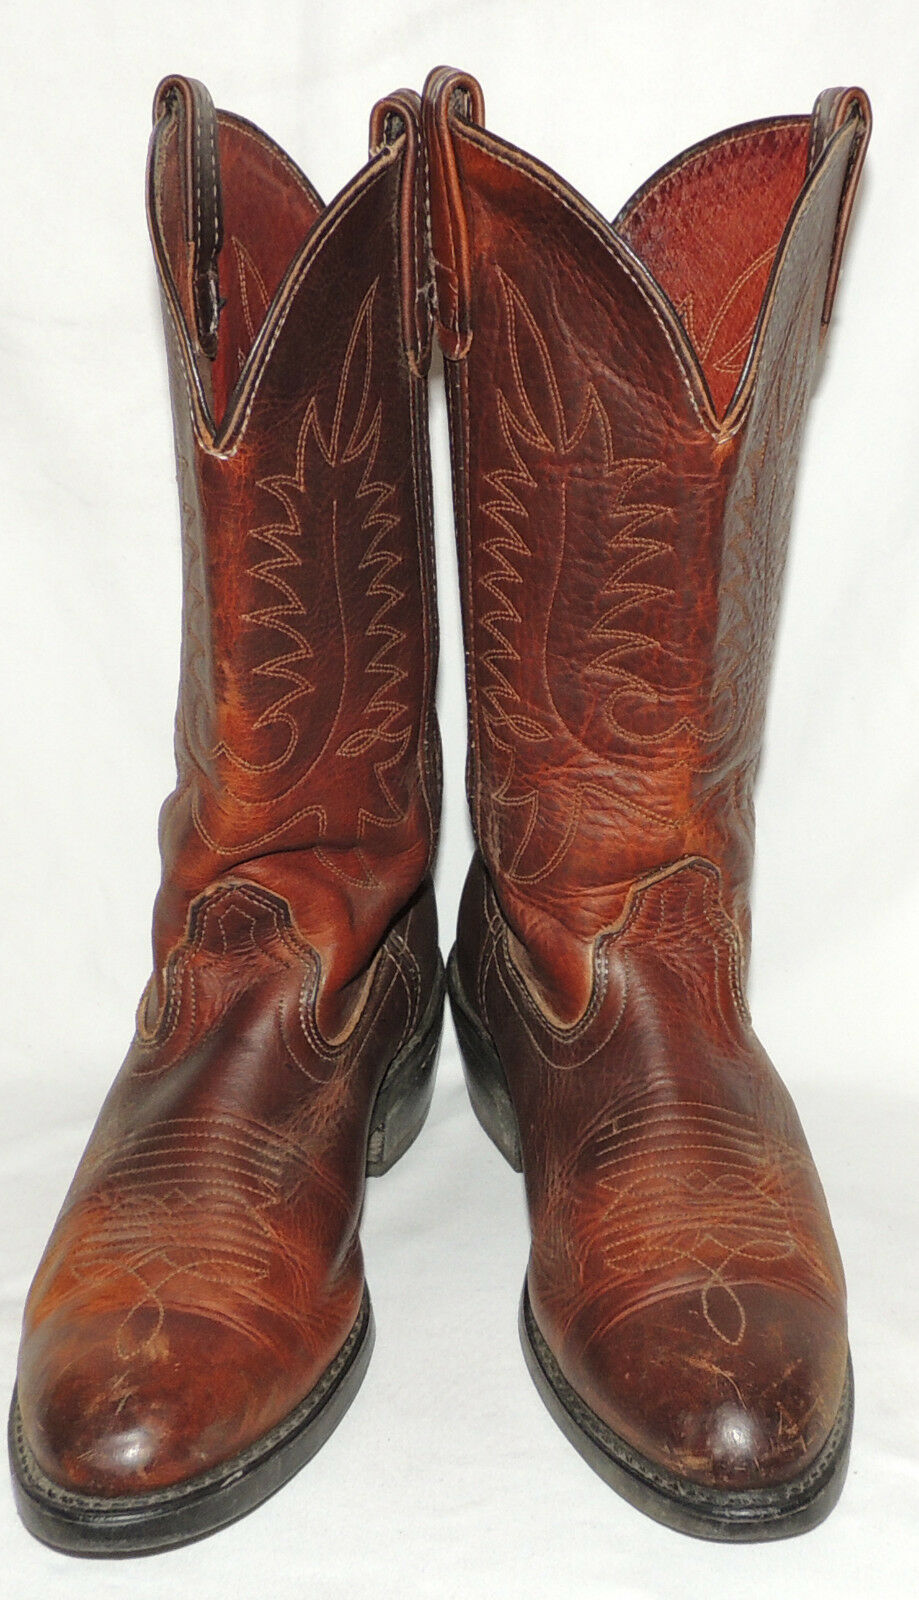 MEN'S DD TUFF 'OILED BROWN' WESTERN BOOTS SIZE 10 D